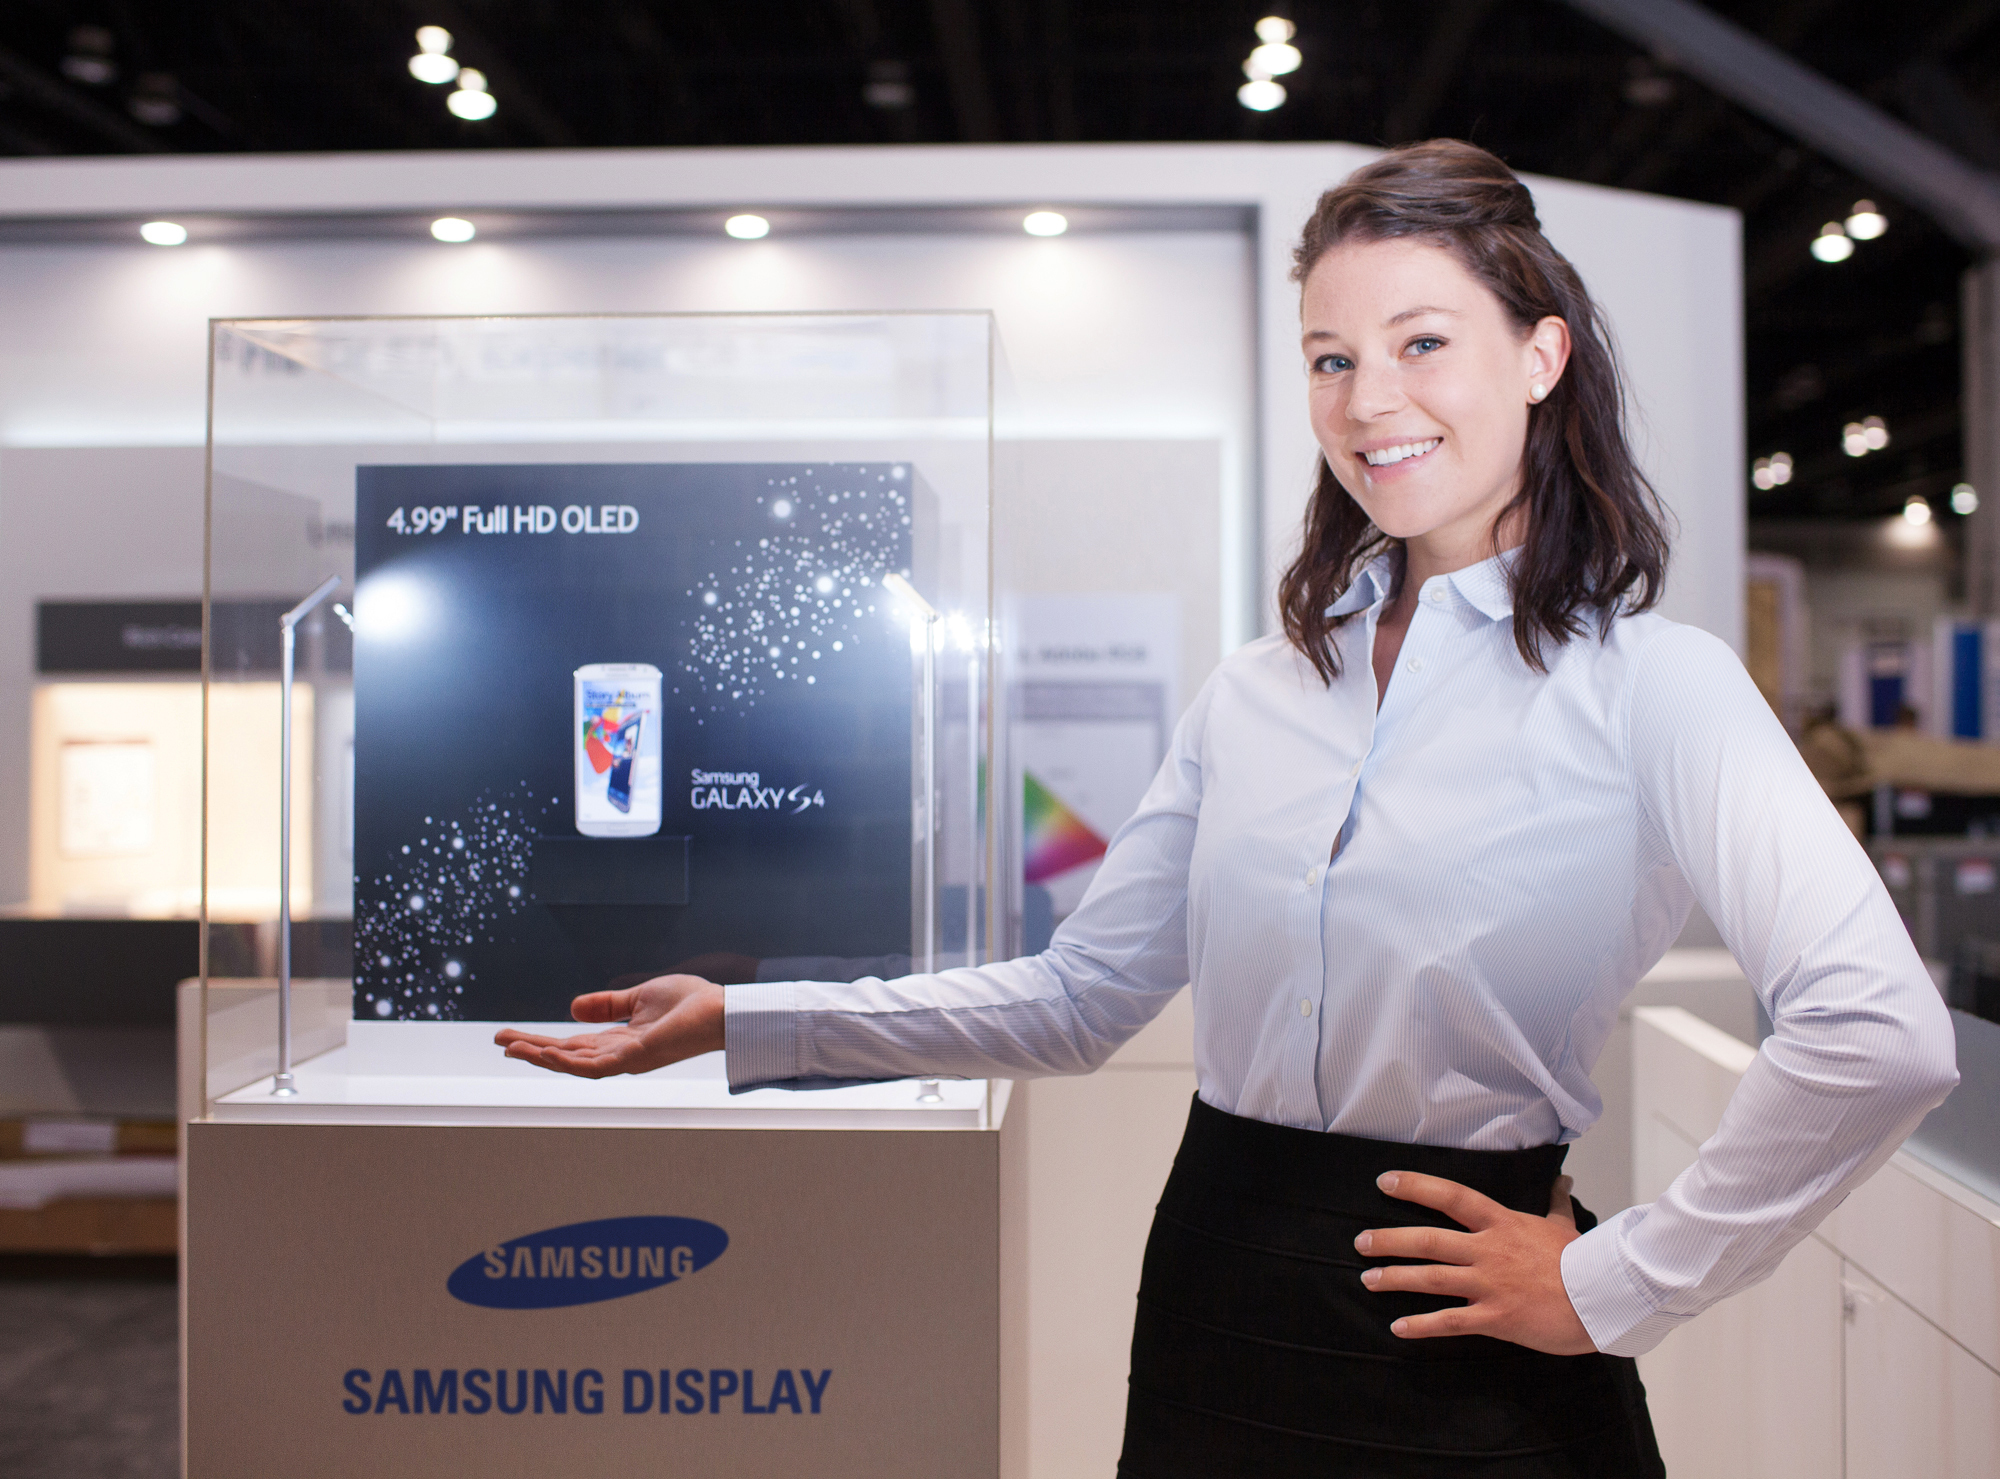 The Morning After: Samsung's 'unbreakable' smartphone display gets tested